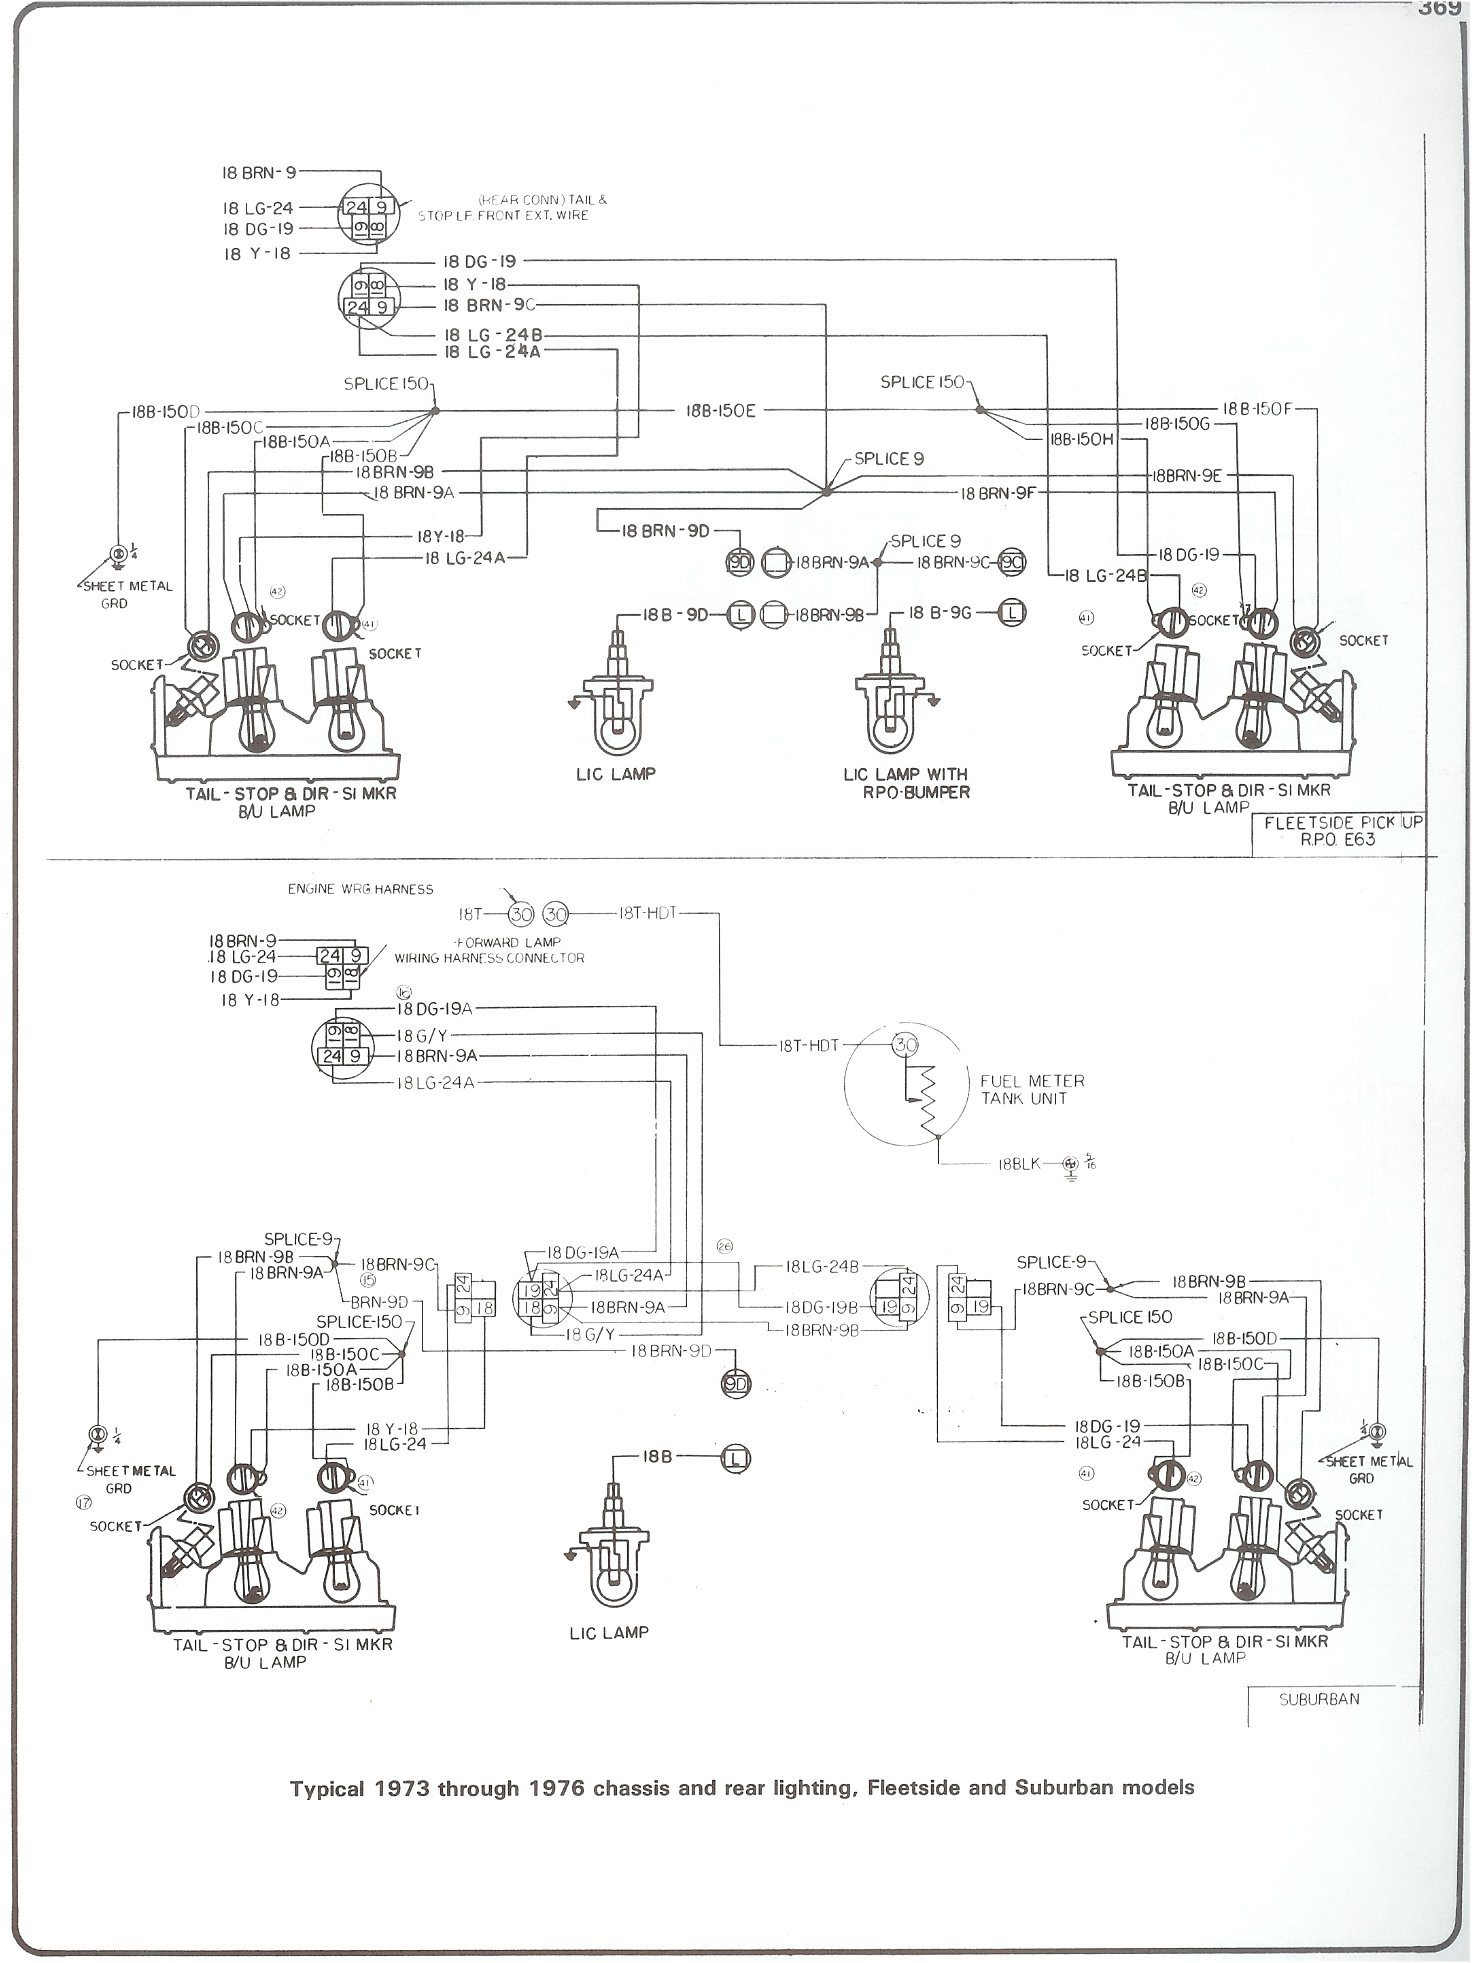 Complete 73 87 Wiring Diagrams 2007 Yukon Denali Diagram 76 Chassis Rear Lighting Fleetside And Suburban